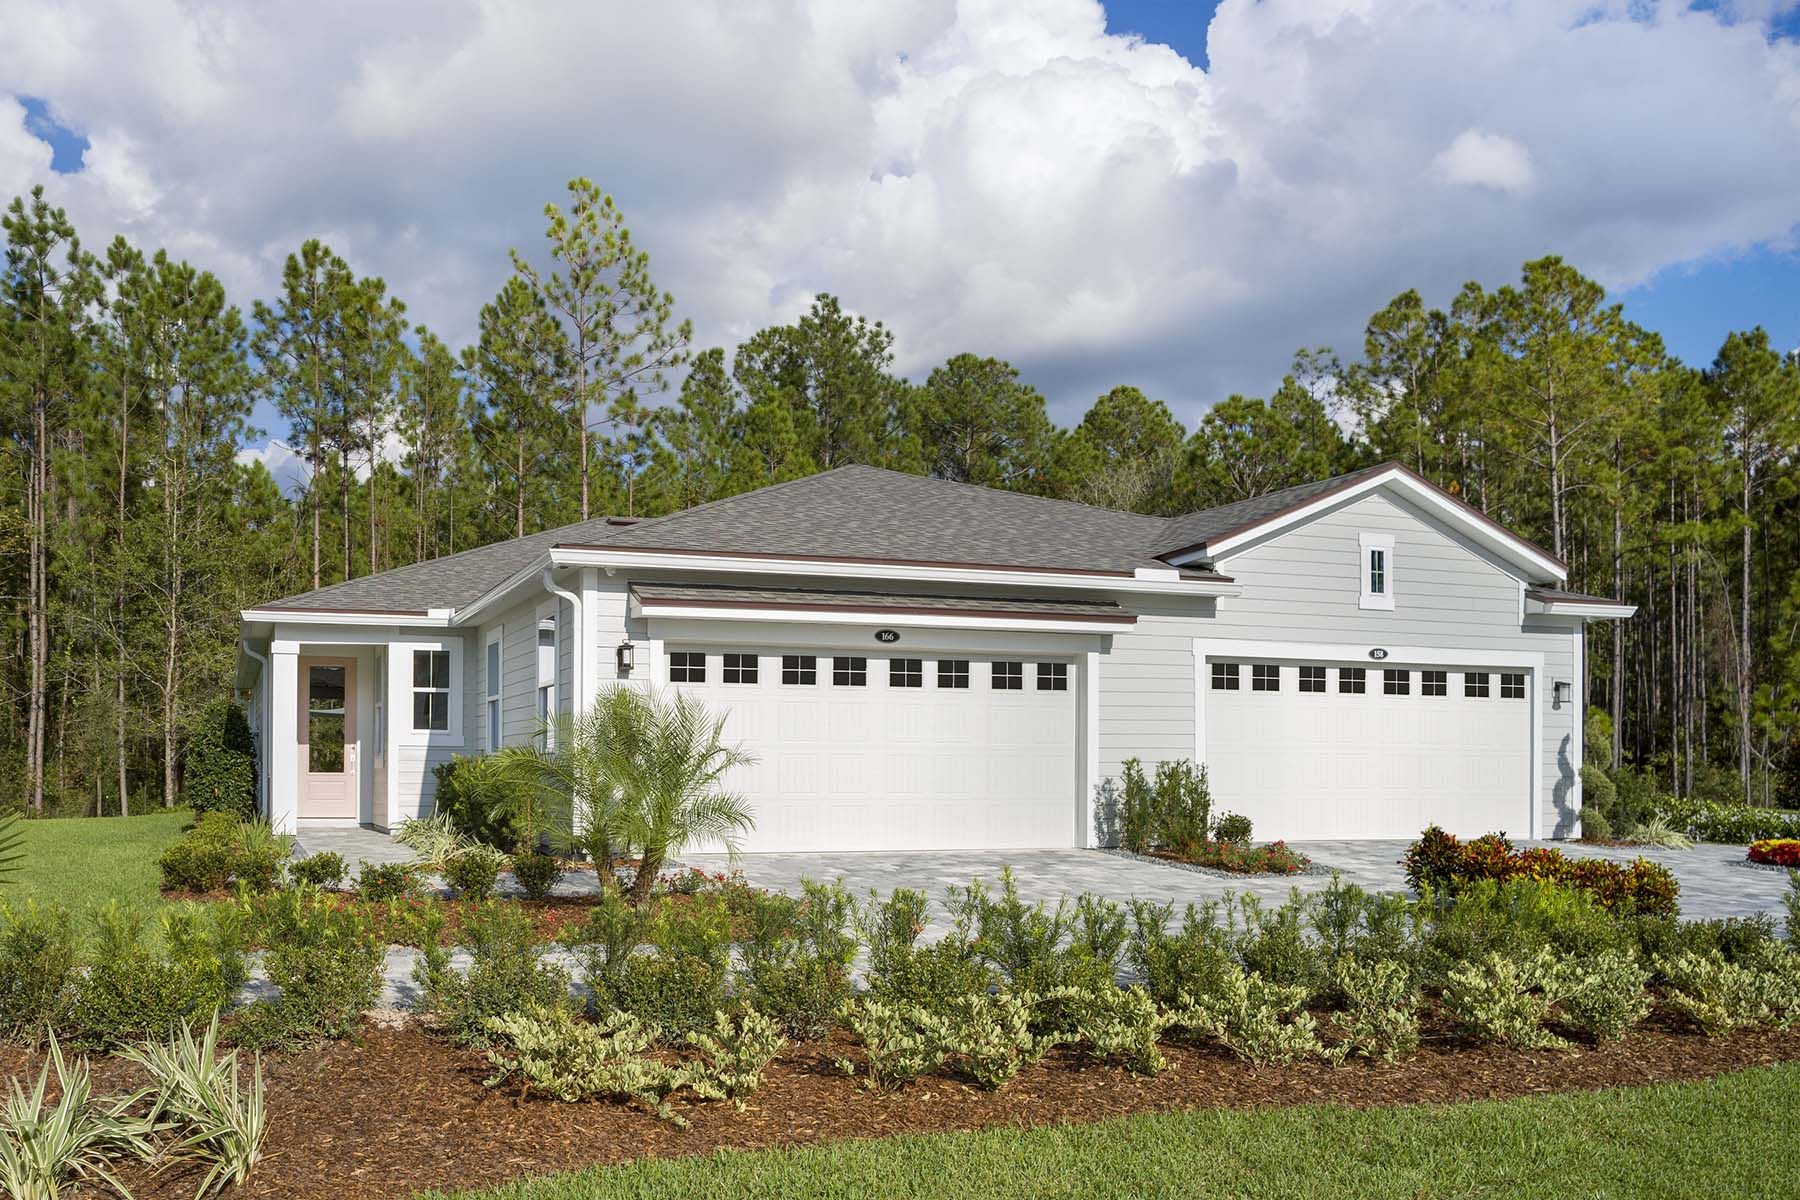 Ocean Plan Elevation Front at RiverTown - WaterSong in St. Johns Florida by Mattamy Homes